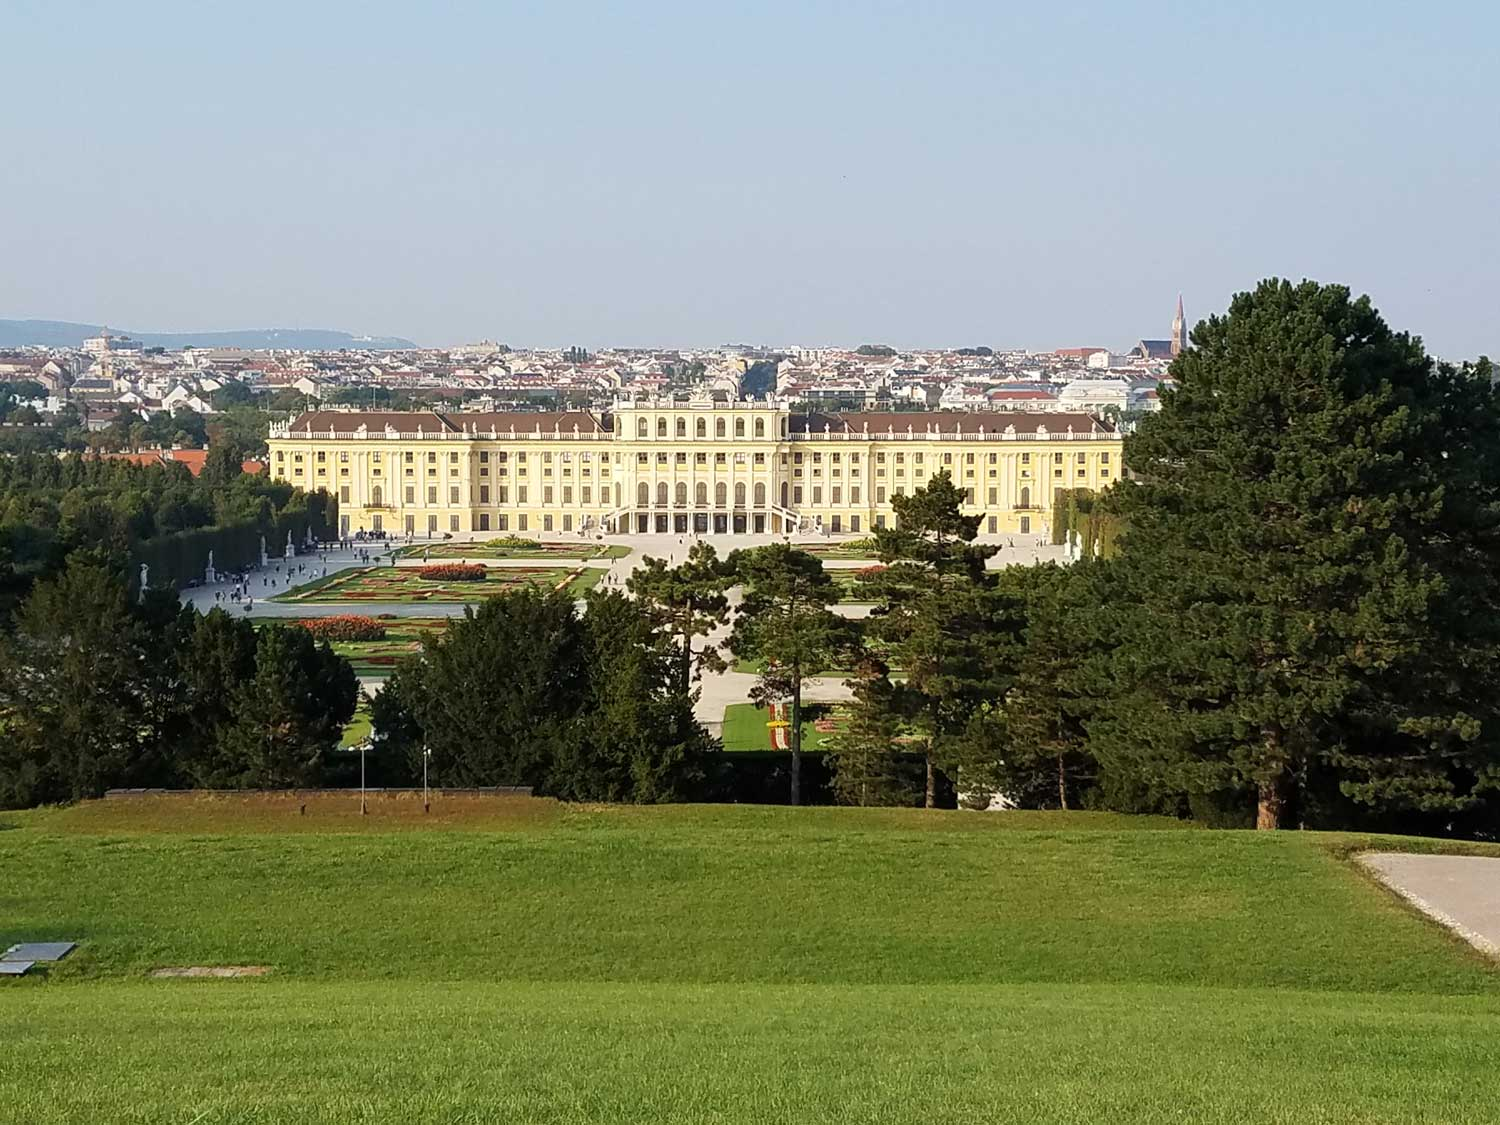 One of my favorite spots in Vienna—at the top of the gardens looking down at the Schonbrunn and the city